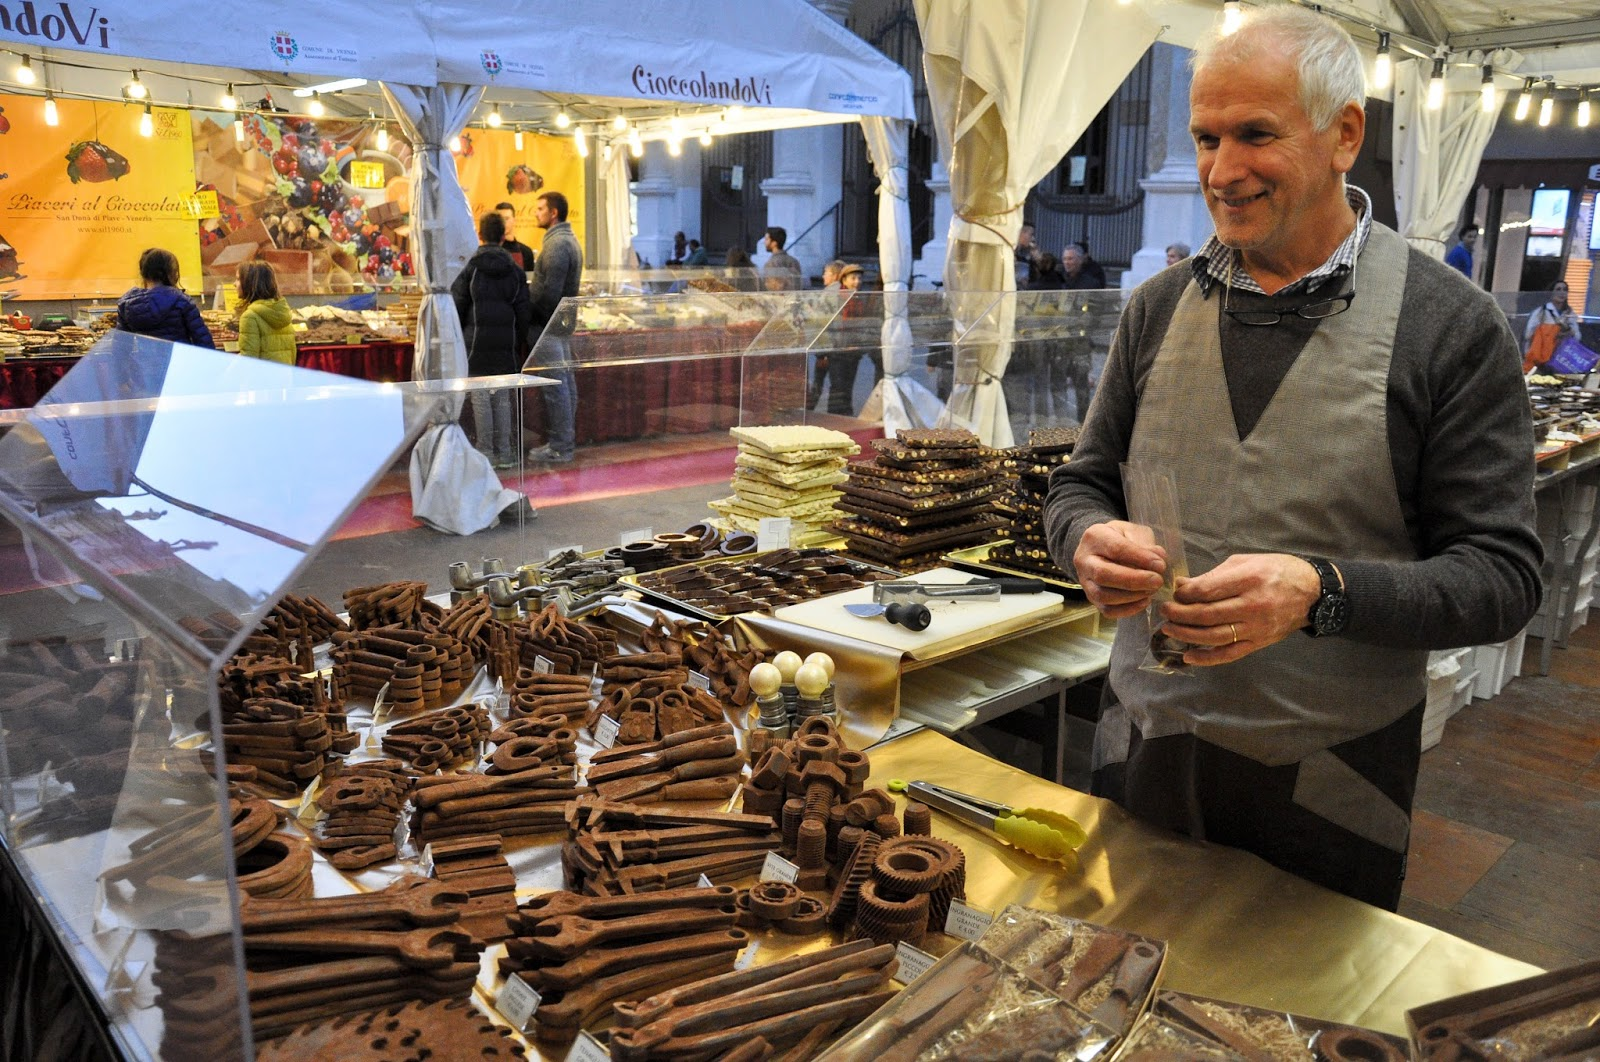 A chocolate maker, Chocolate Festival, Piazza dei Signori, Vicenza, Veneto, Italy